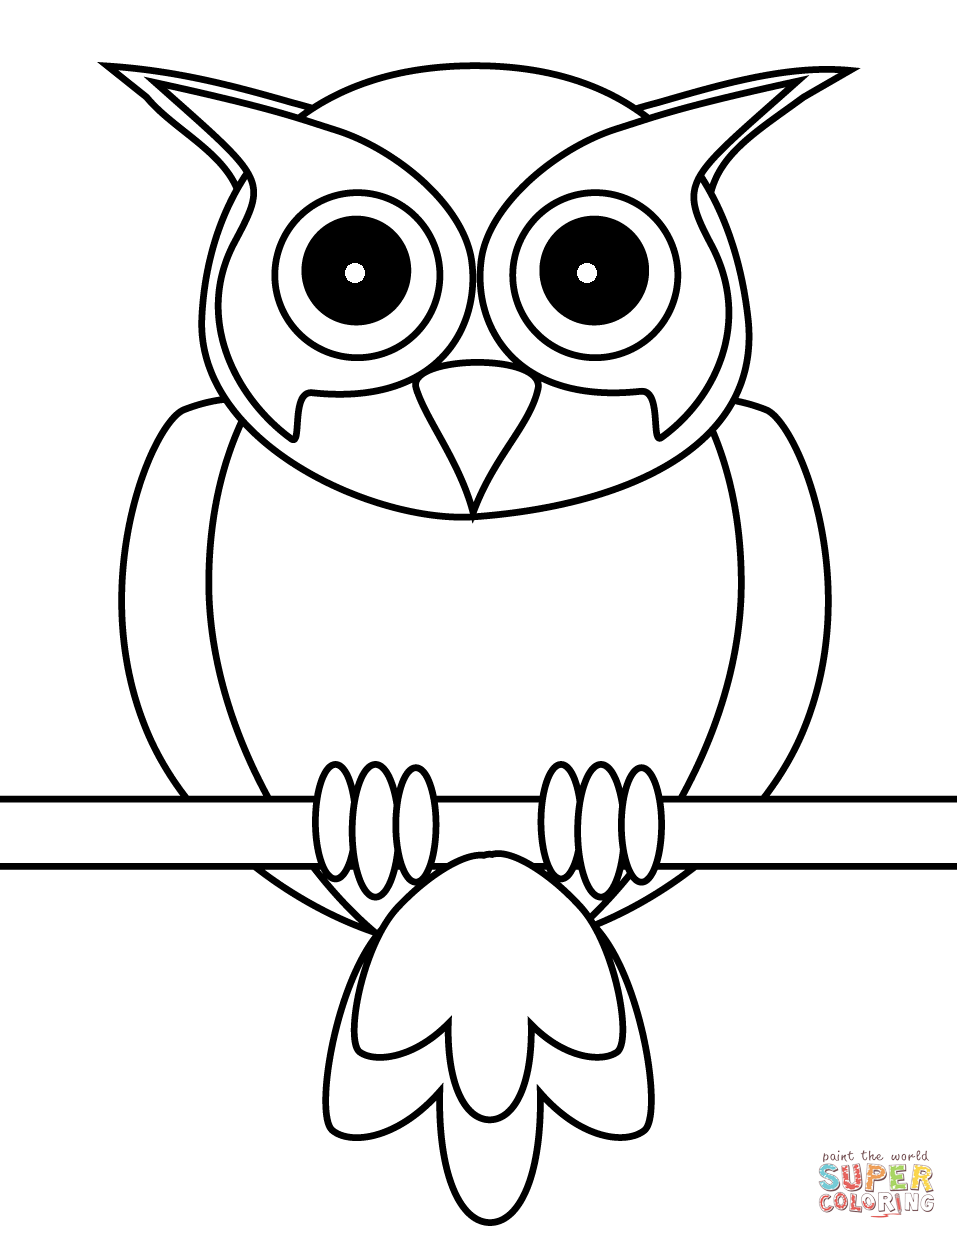 owl images to color 10 difficult owl coloring page for adults owl images to color